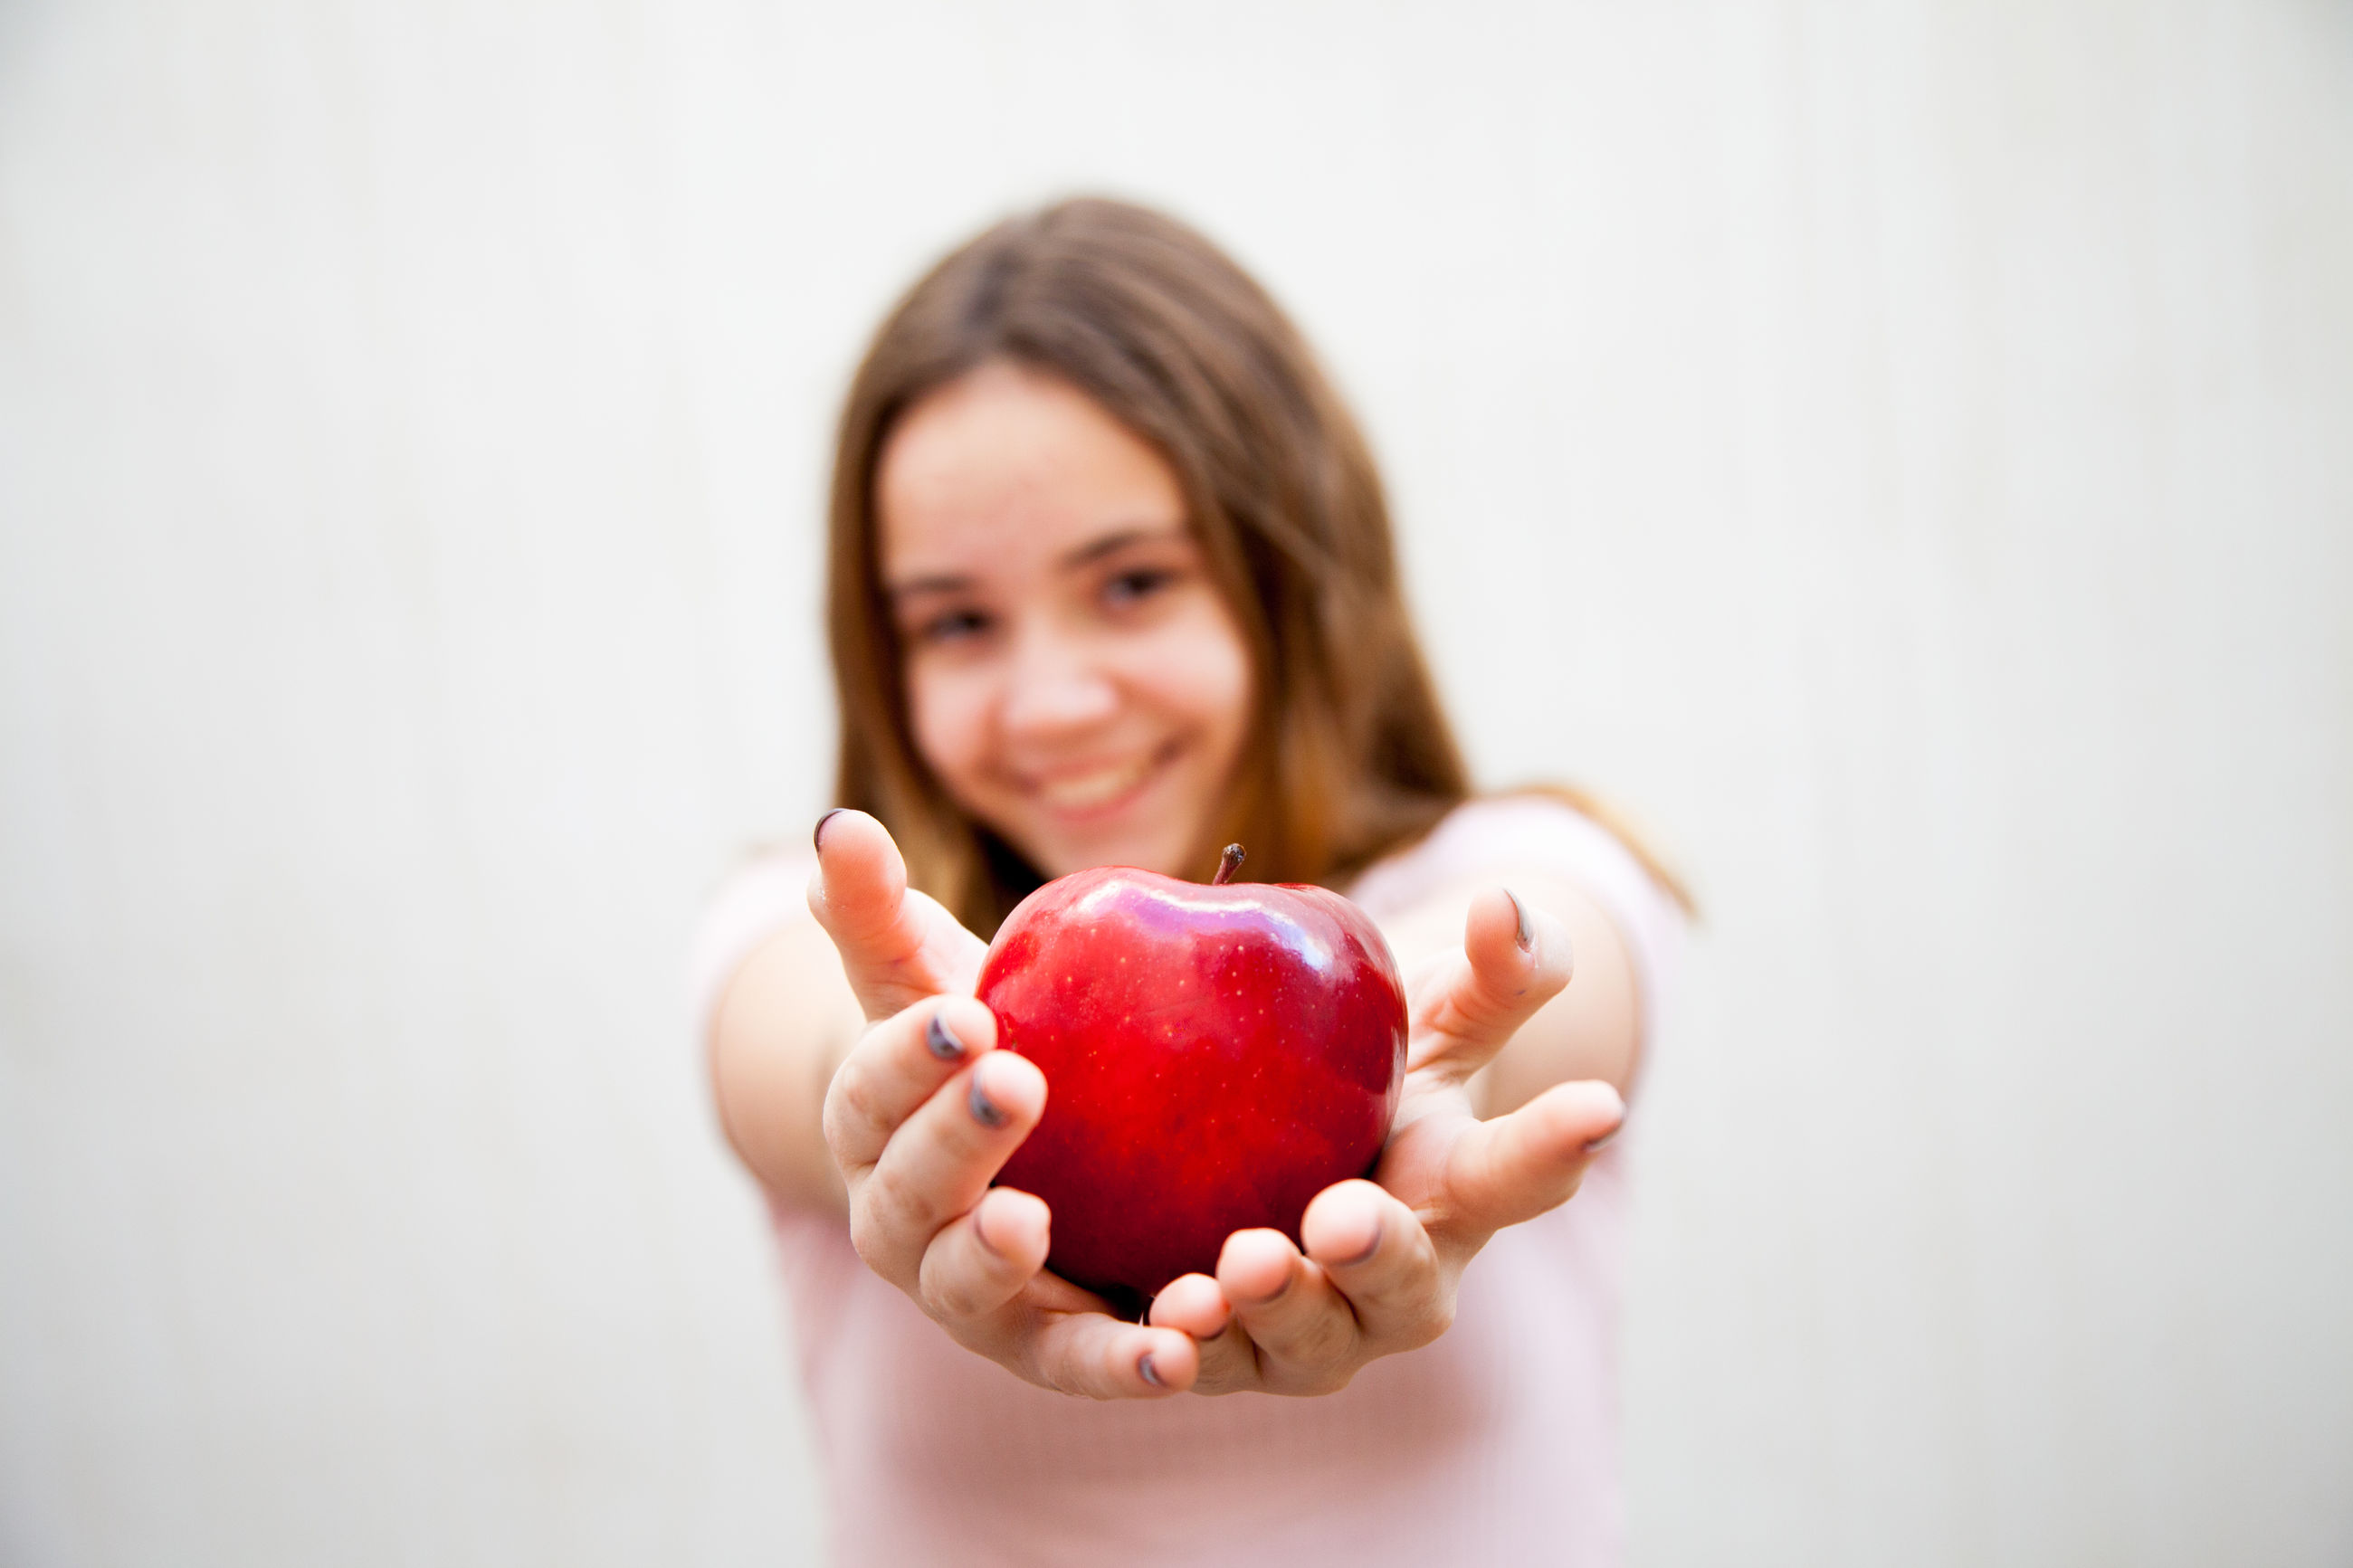 Portrait of girl holding apple while standing against white wall